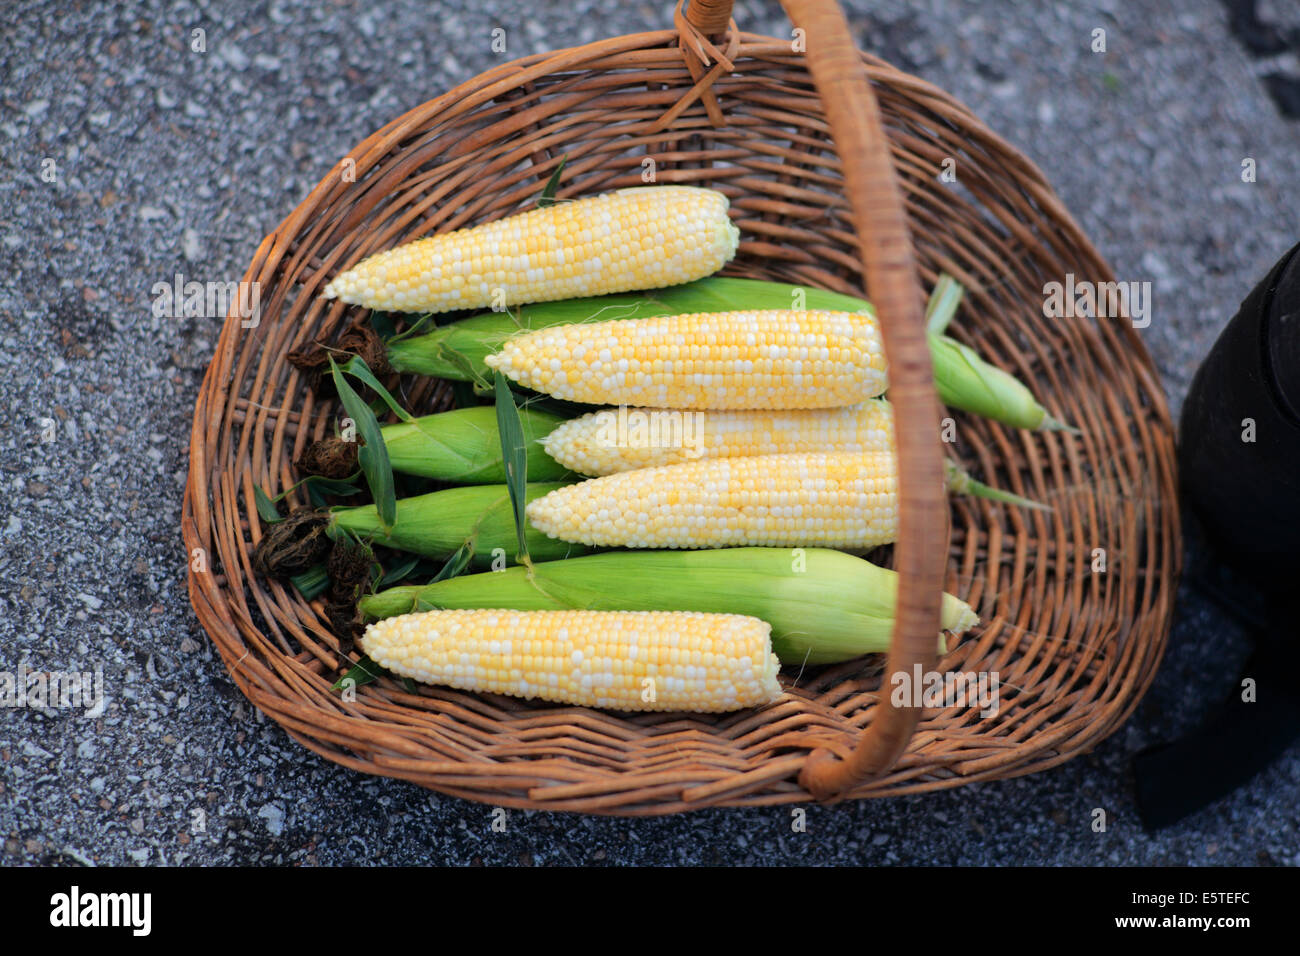 Ears of corn in wicker basket. - Stock Image